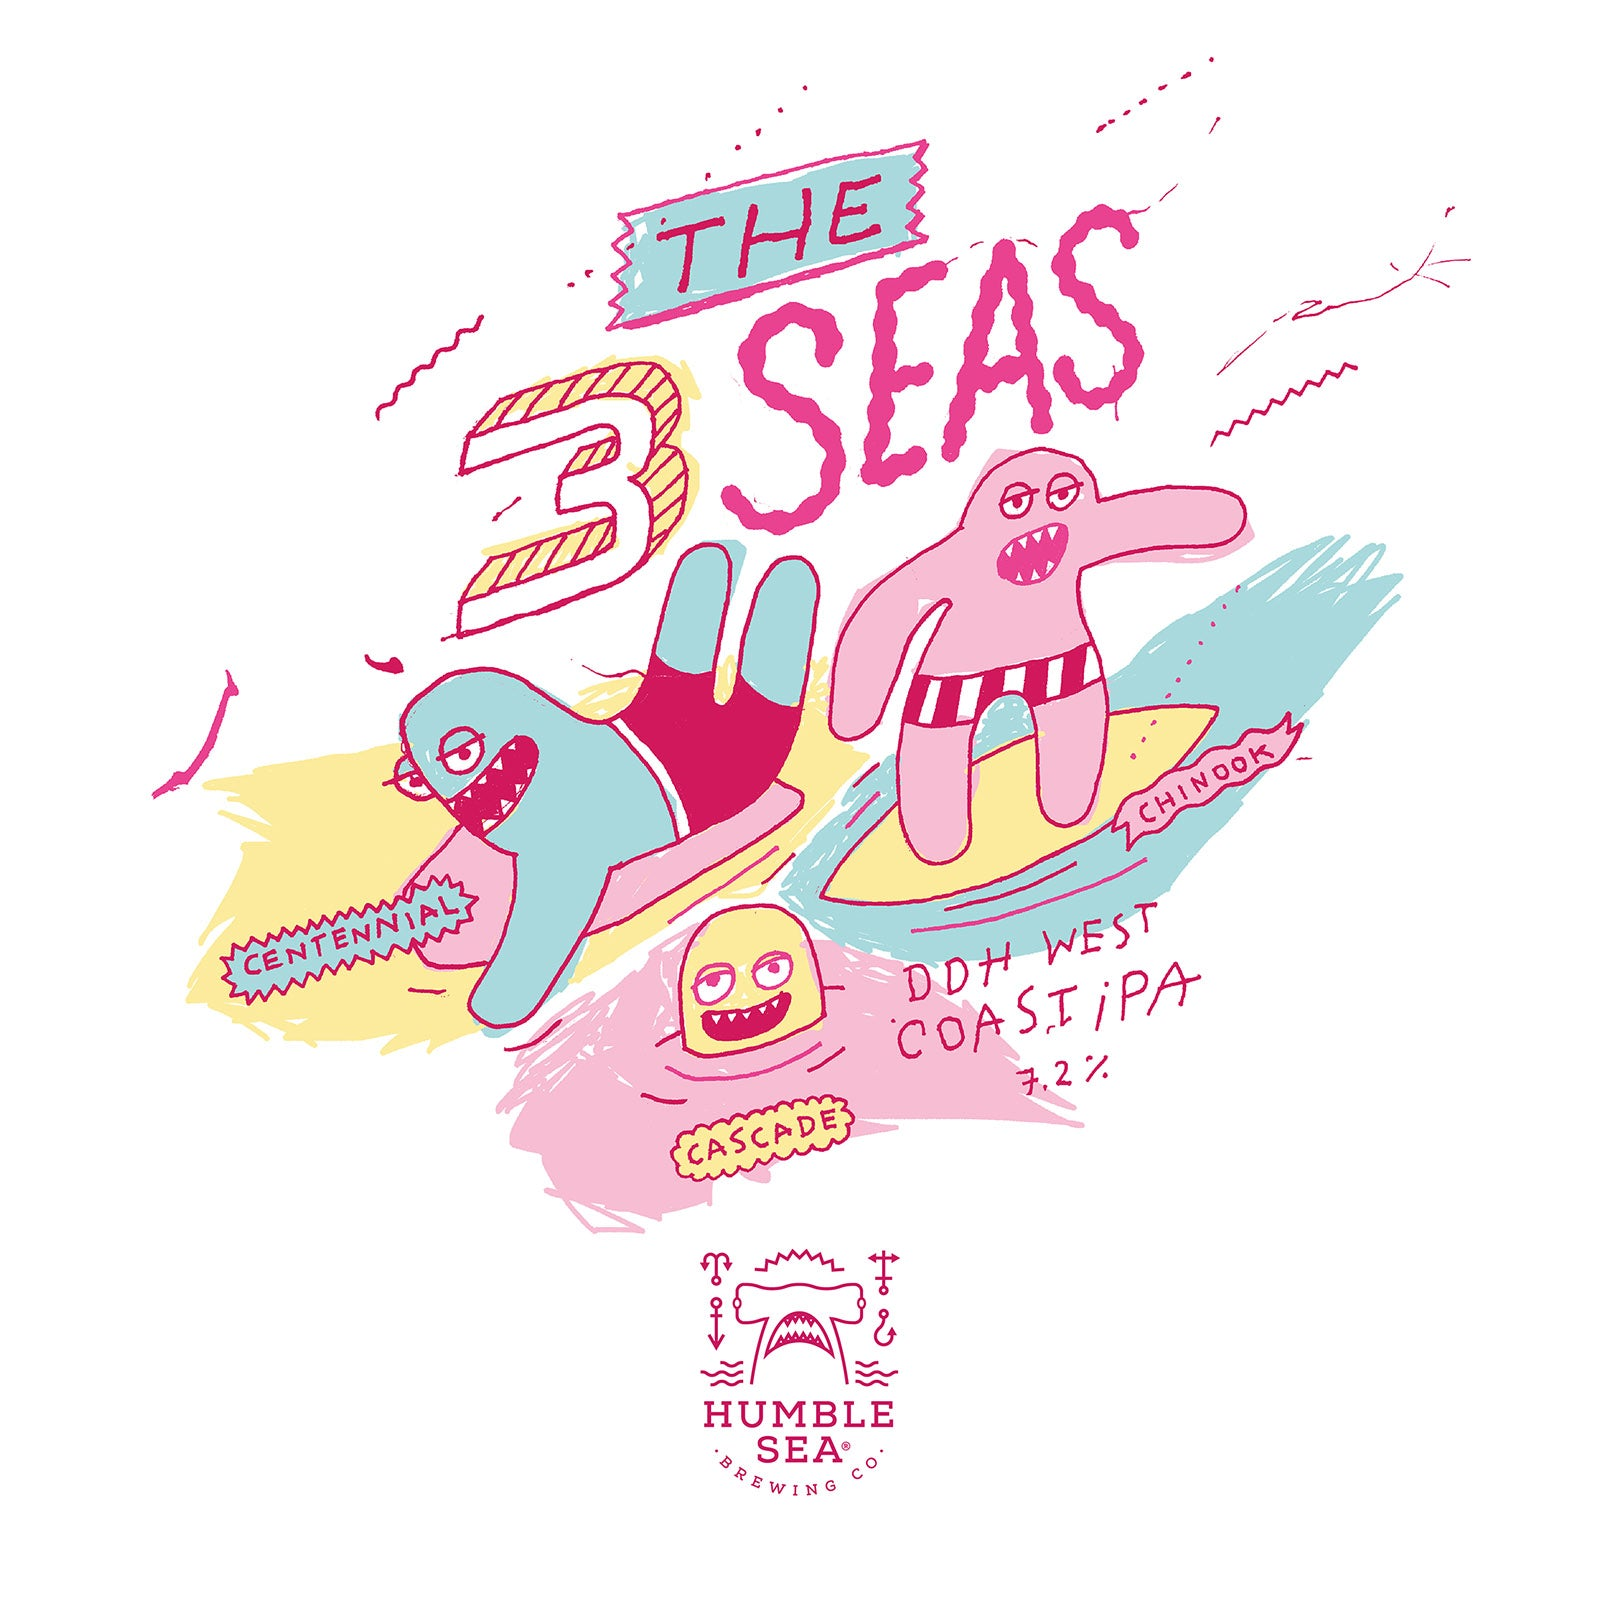 The 3 Seas - West Coast IPA (4-pack of 16oz cans)